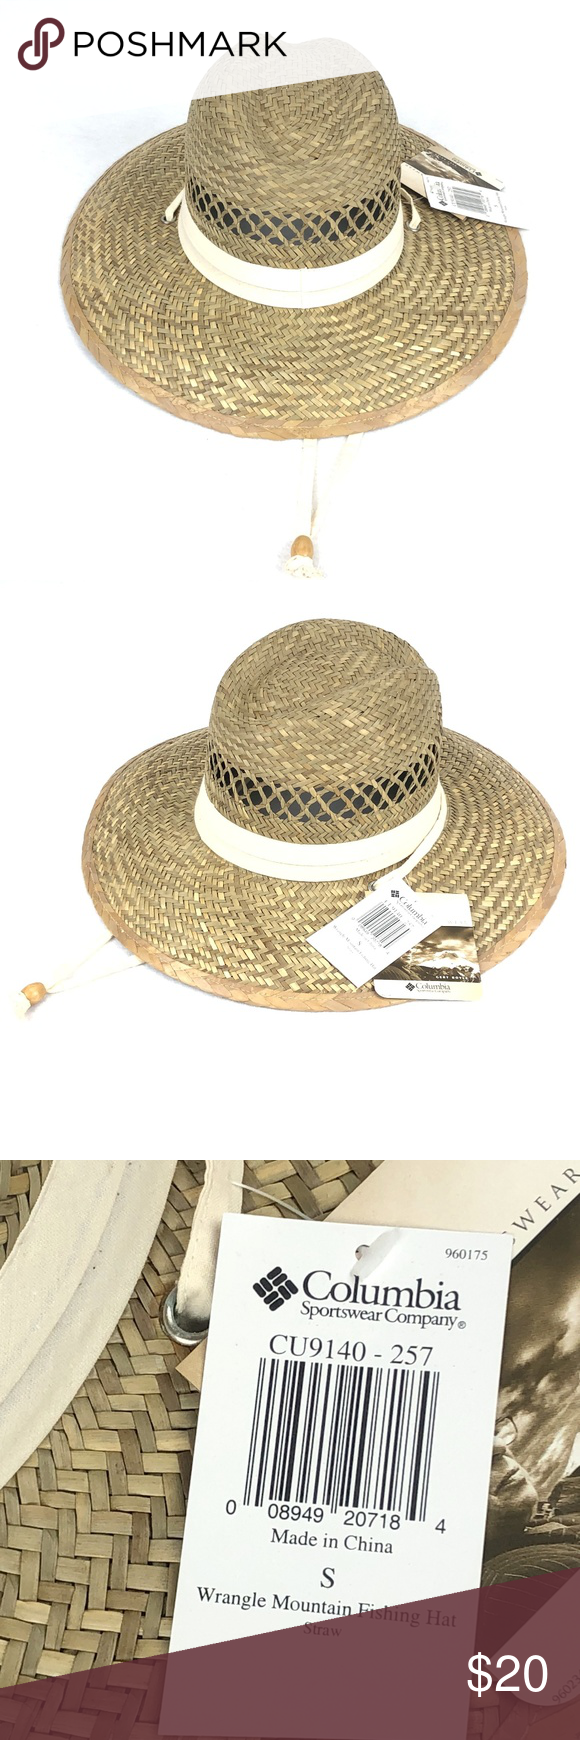 Columbia Wrangle Mountain Fishing Hat Fishing Hat Hats Things To Sell